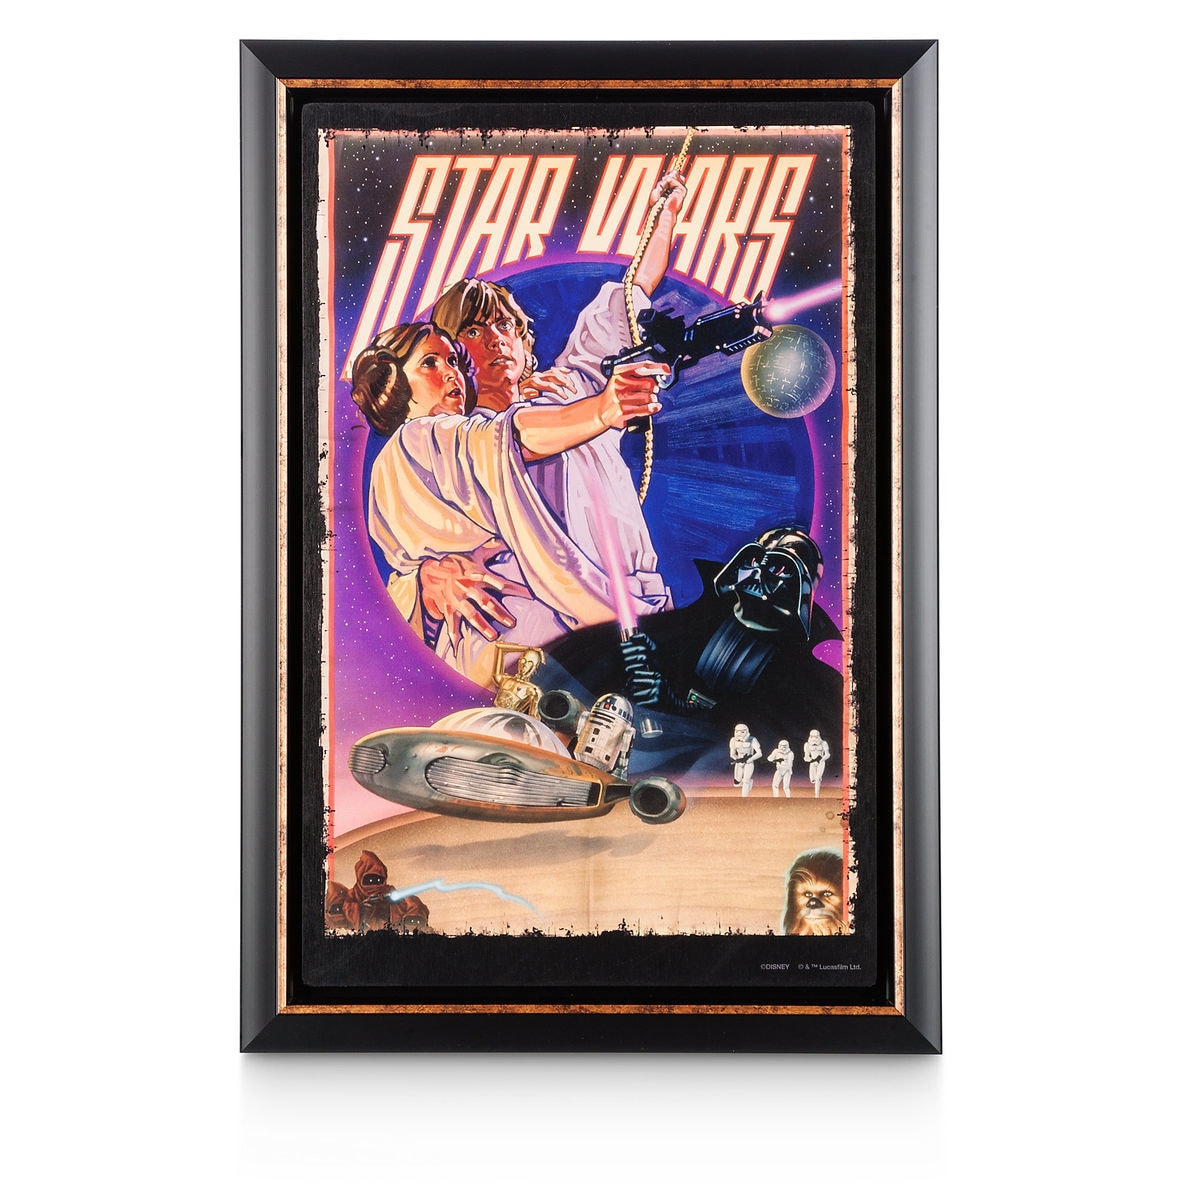 star wars movie poster reproduction metal print retro framed